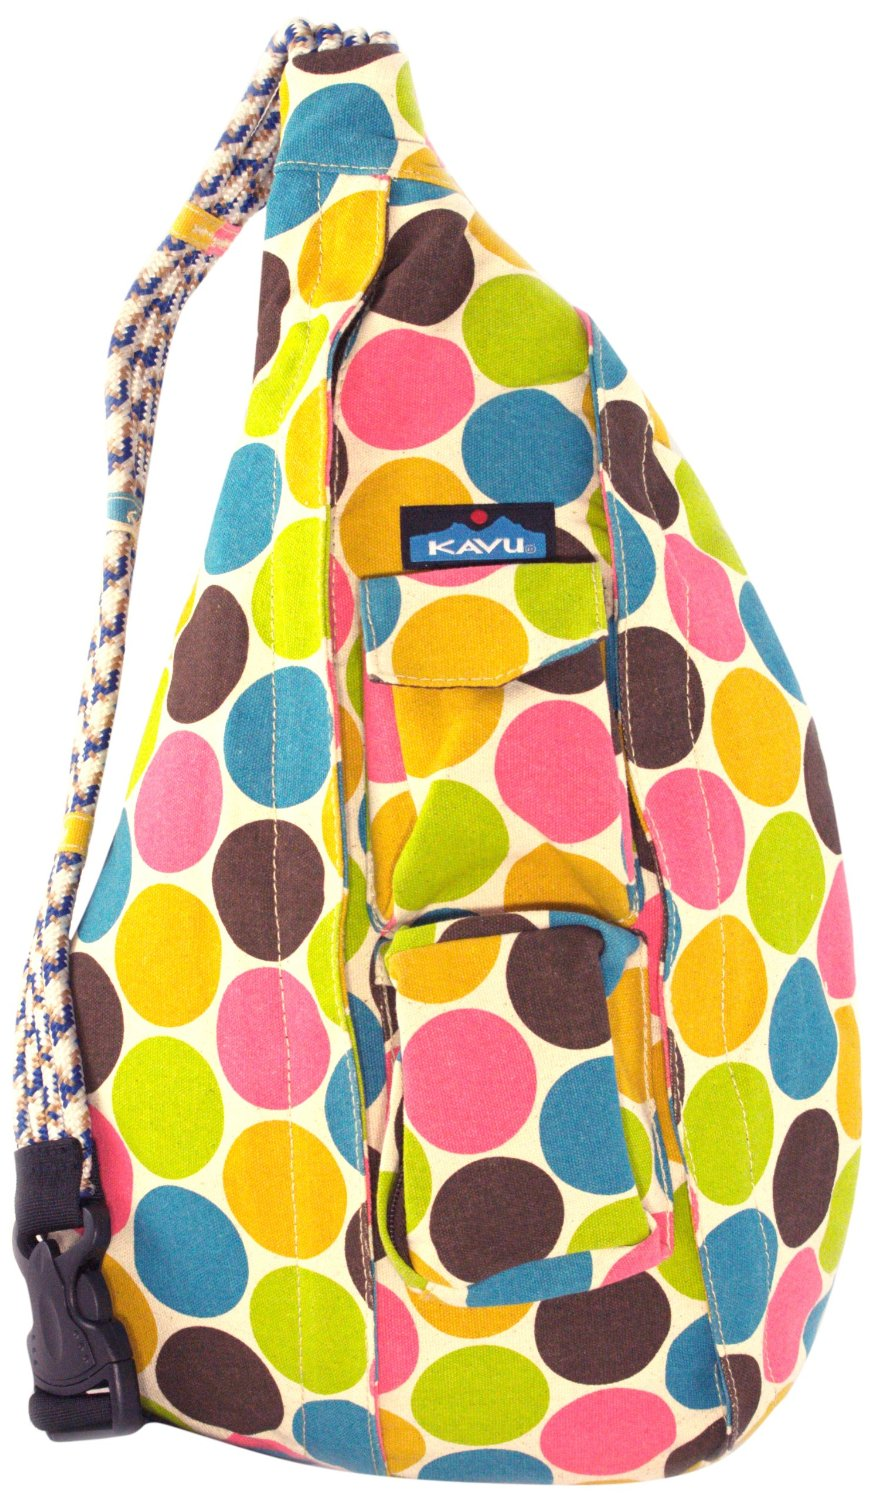 Kavu sling bag comes in a variety of colours. Image from Kavu website.